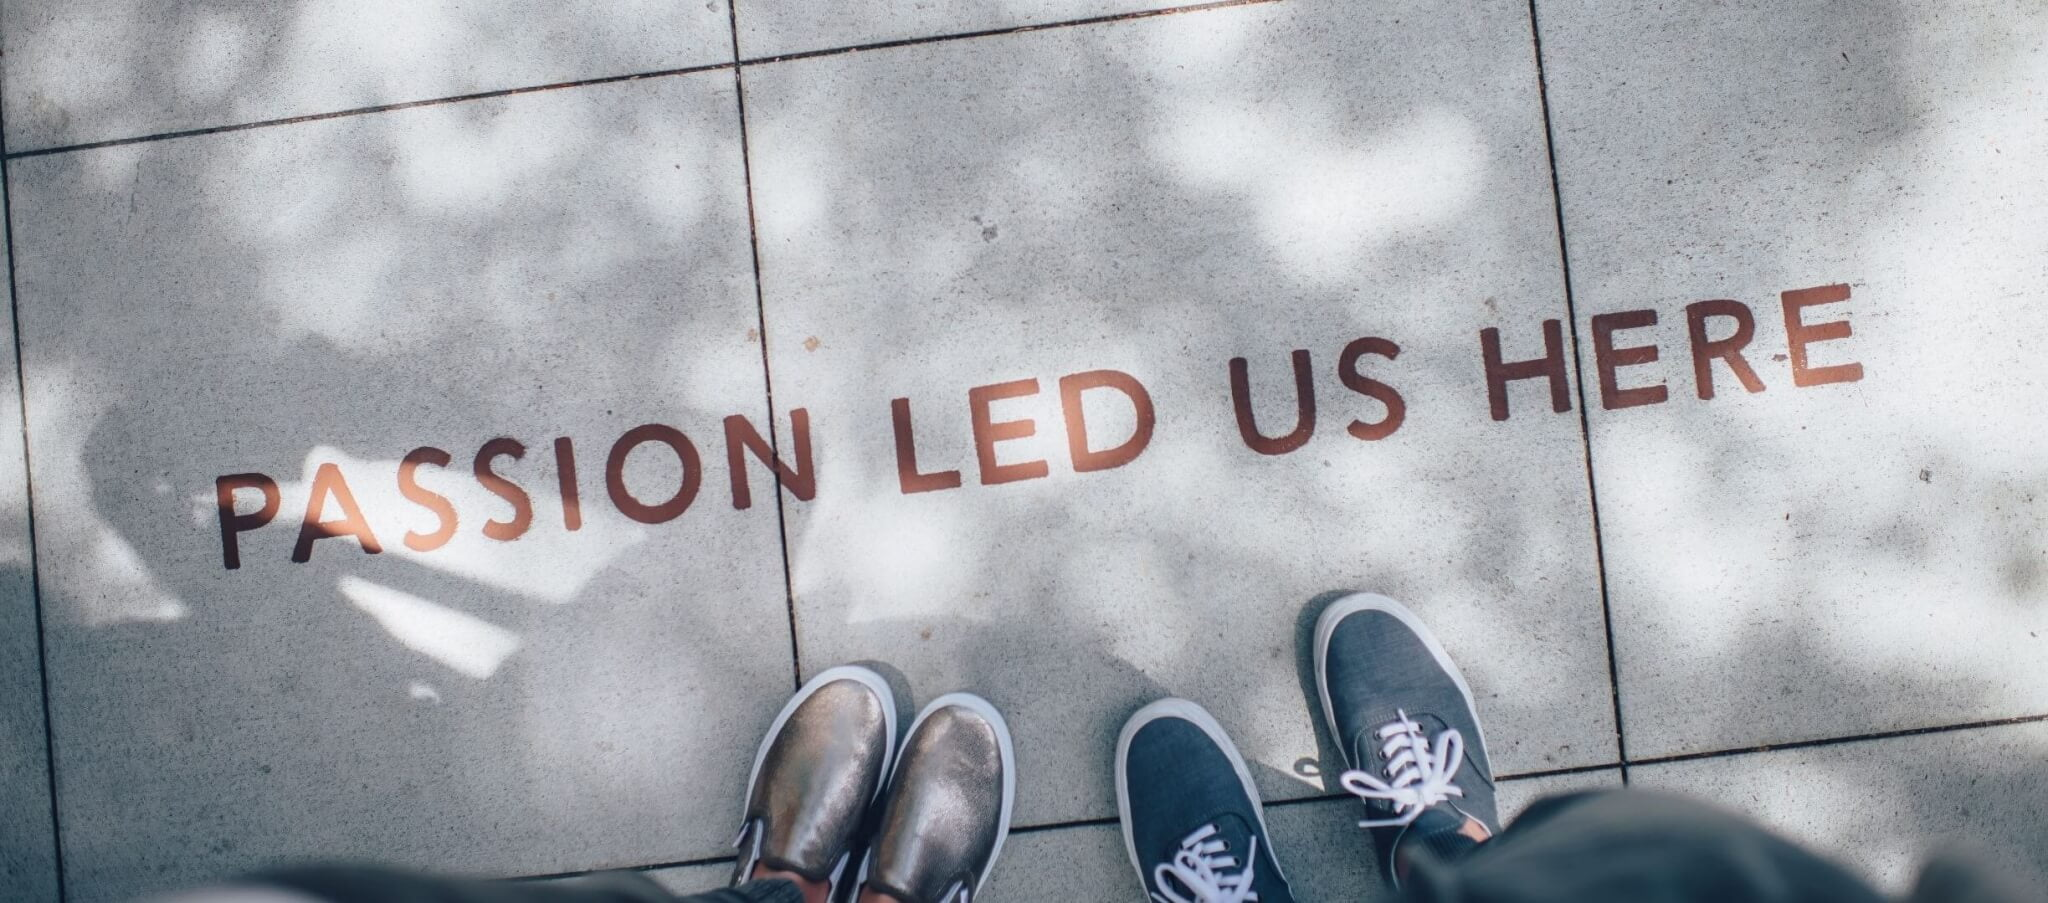 Passion led us here statement on brick paving